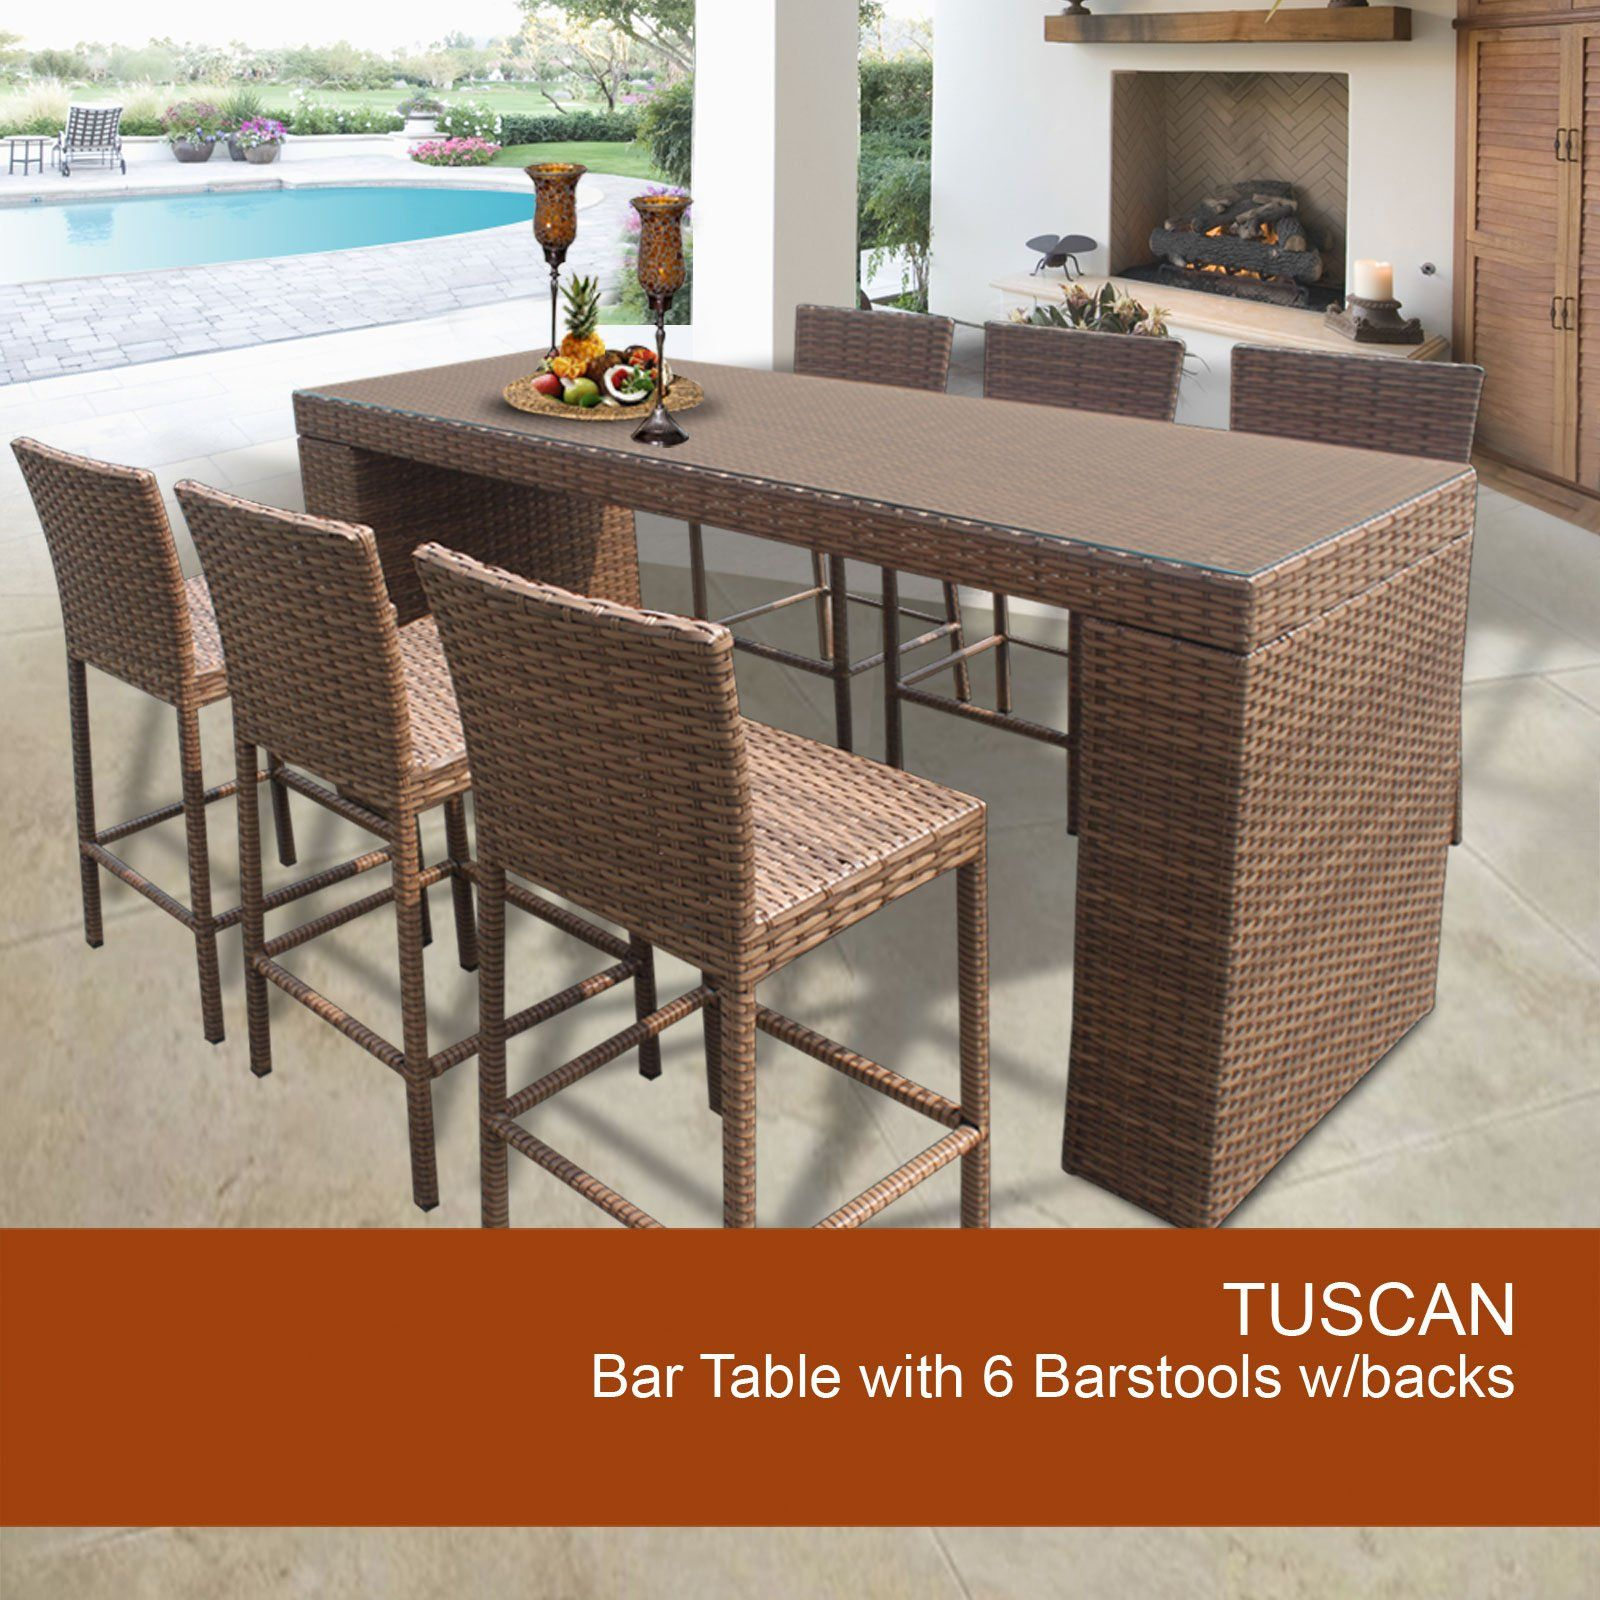 Tuscan Bar Table Set With Barstools 7 Piece Outdoor Wicker Patio